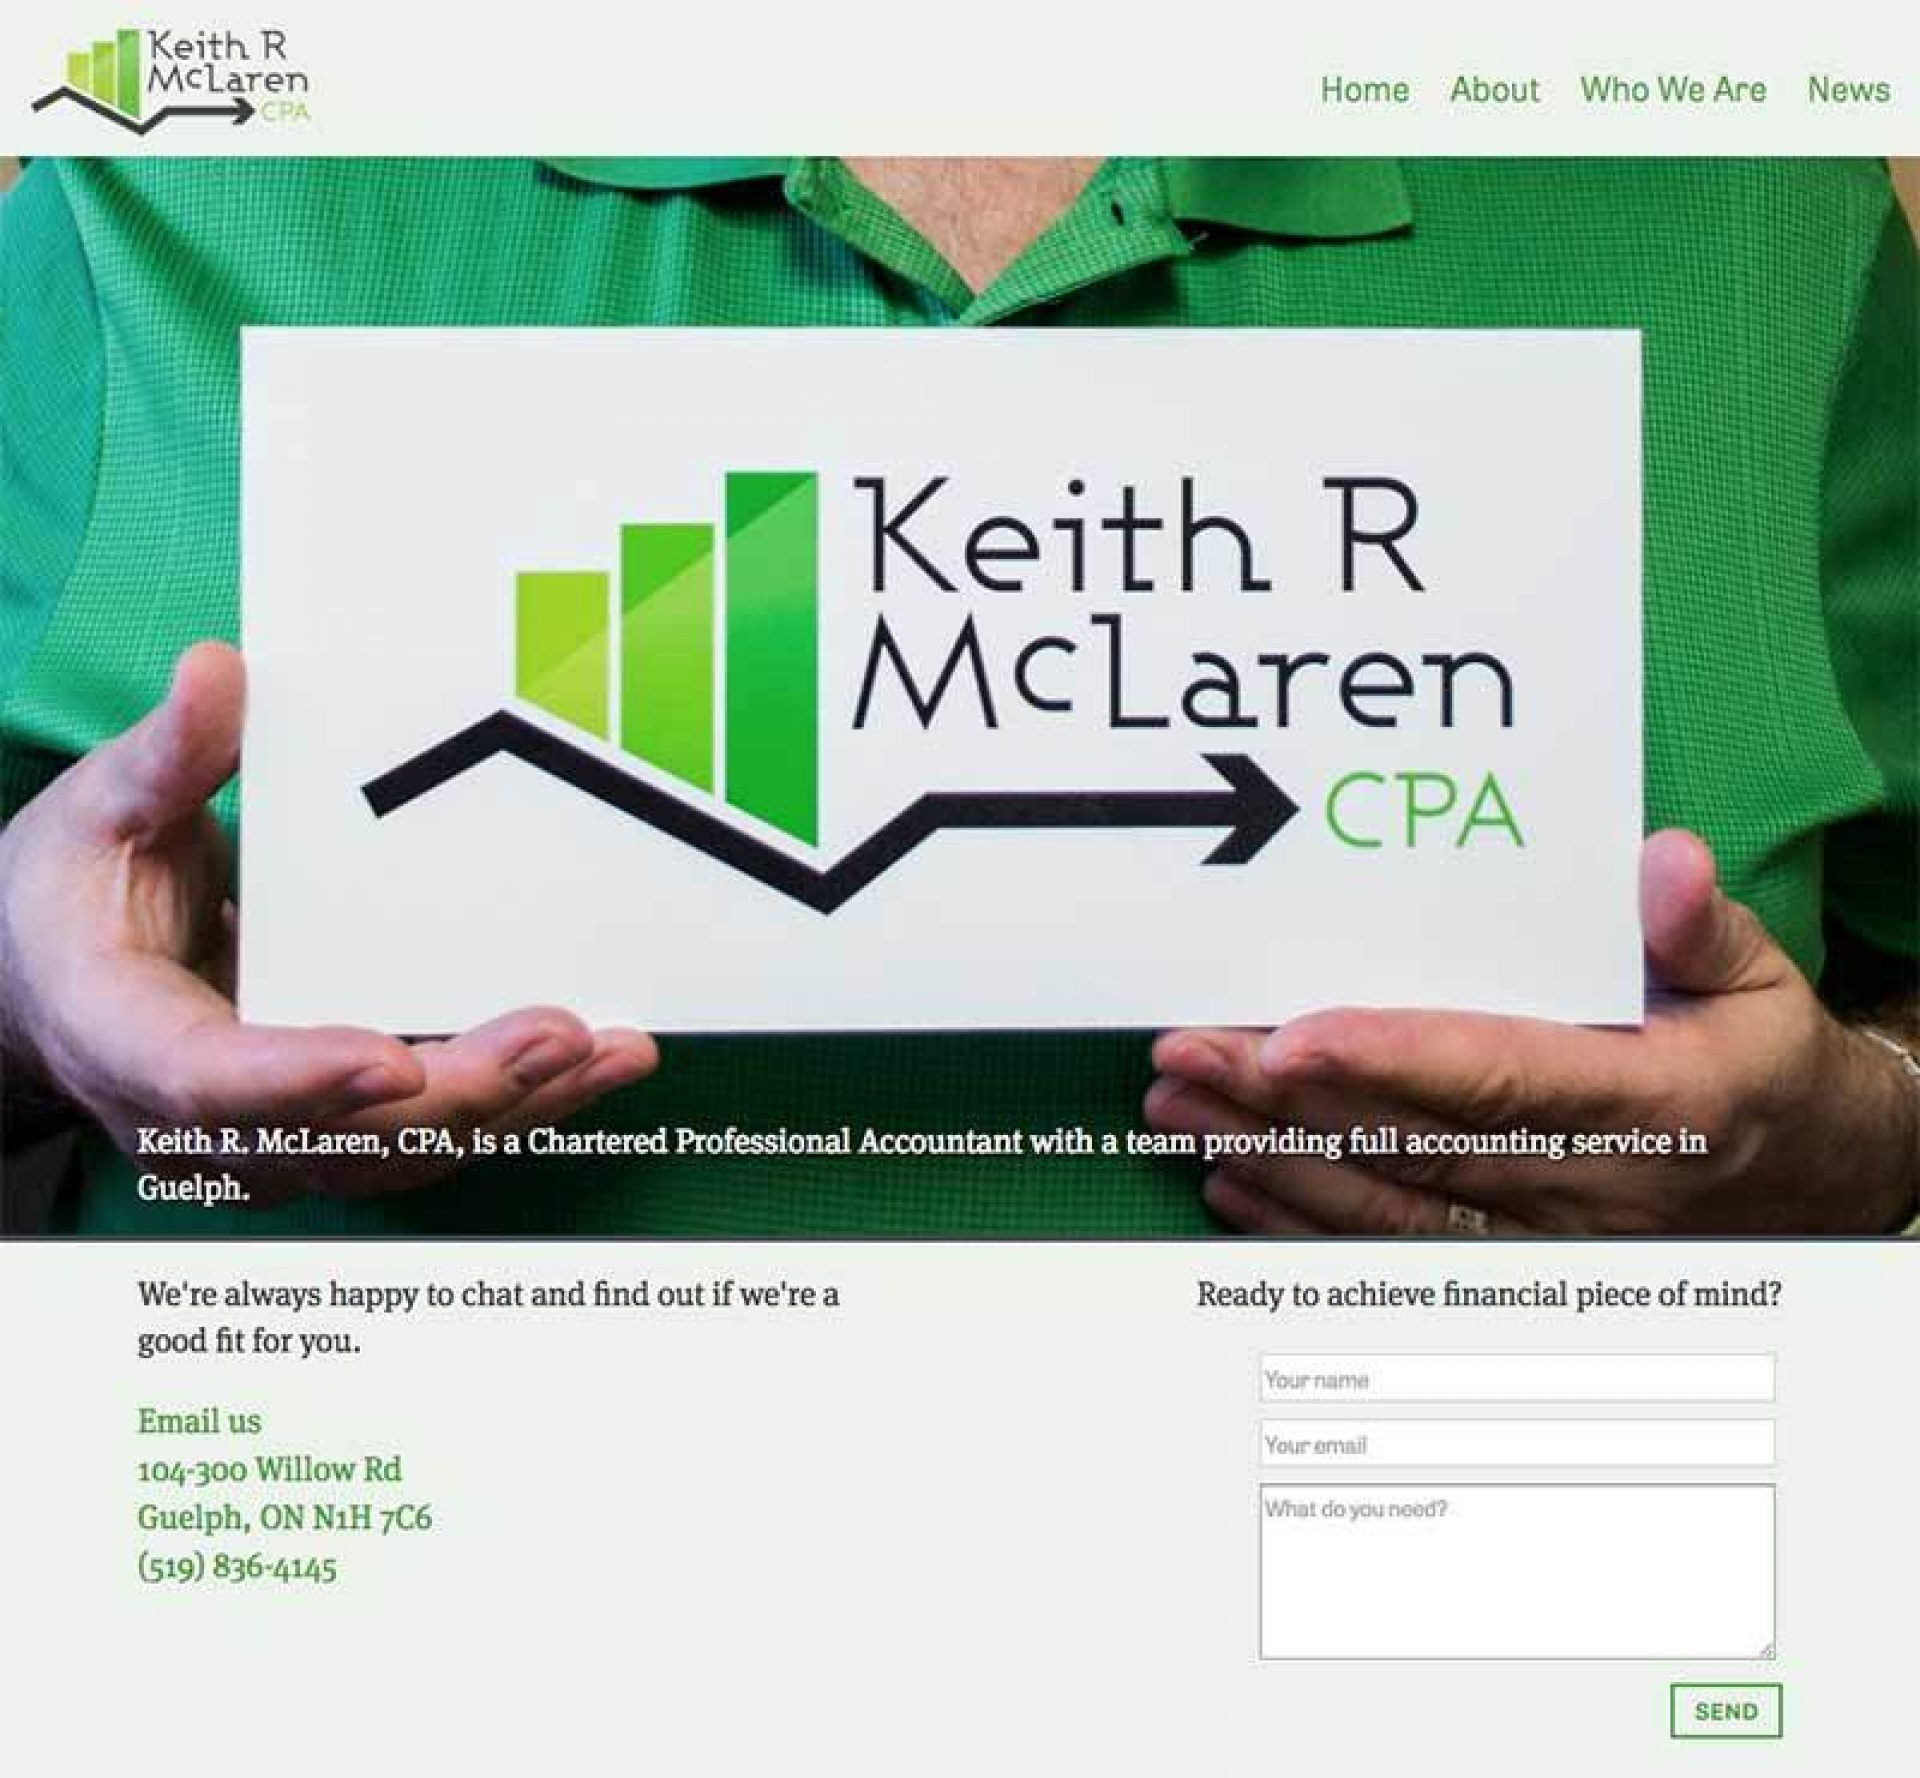 The new home page on Keith's website